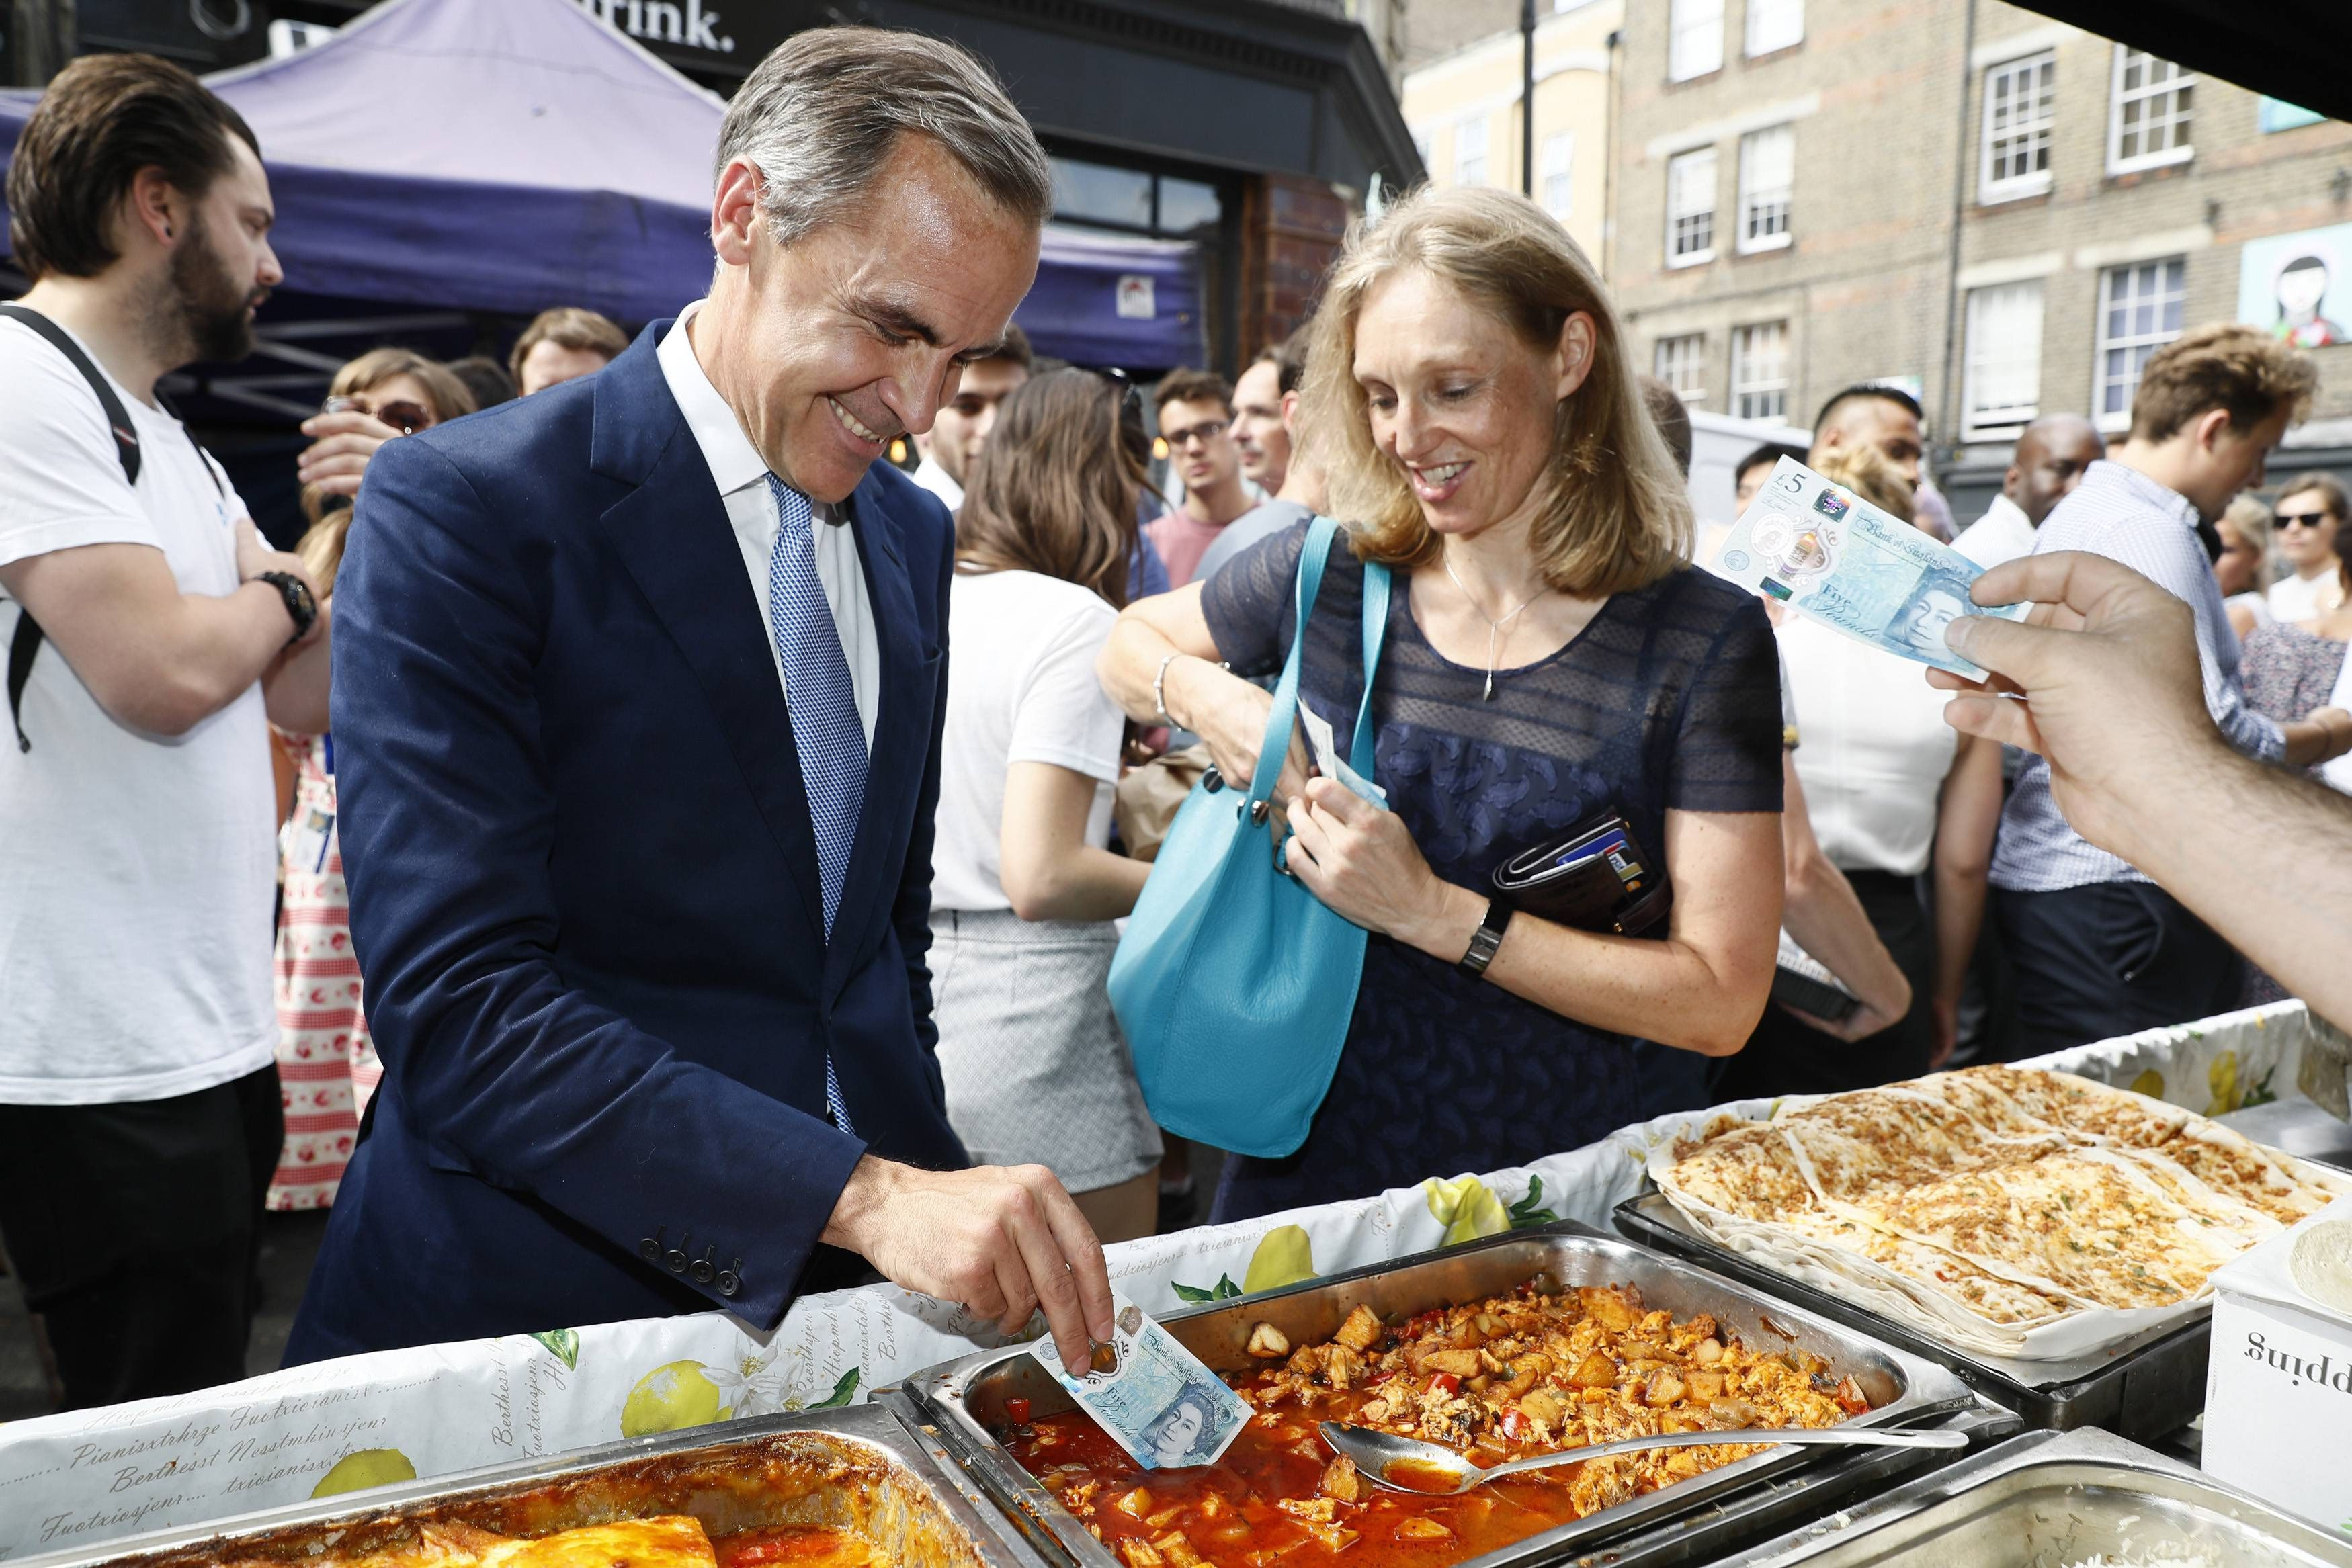 Mark Carney's Beef: Bank of England governor Mark Carney dips his new treyf 5-pound note into food.